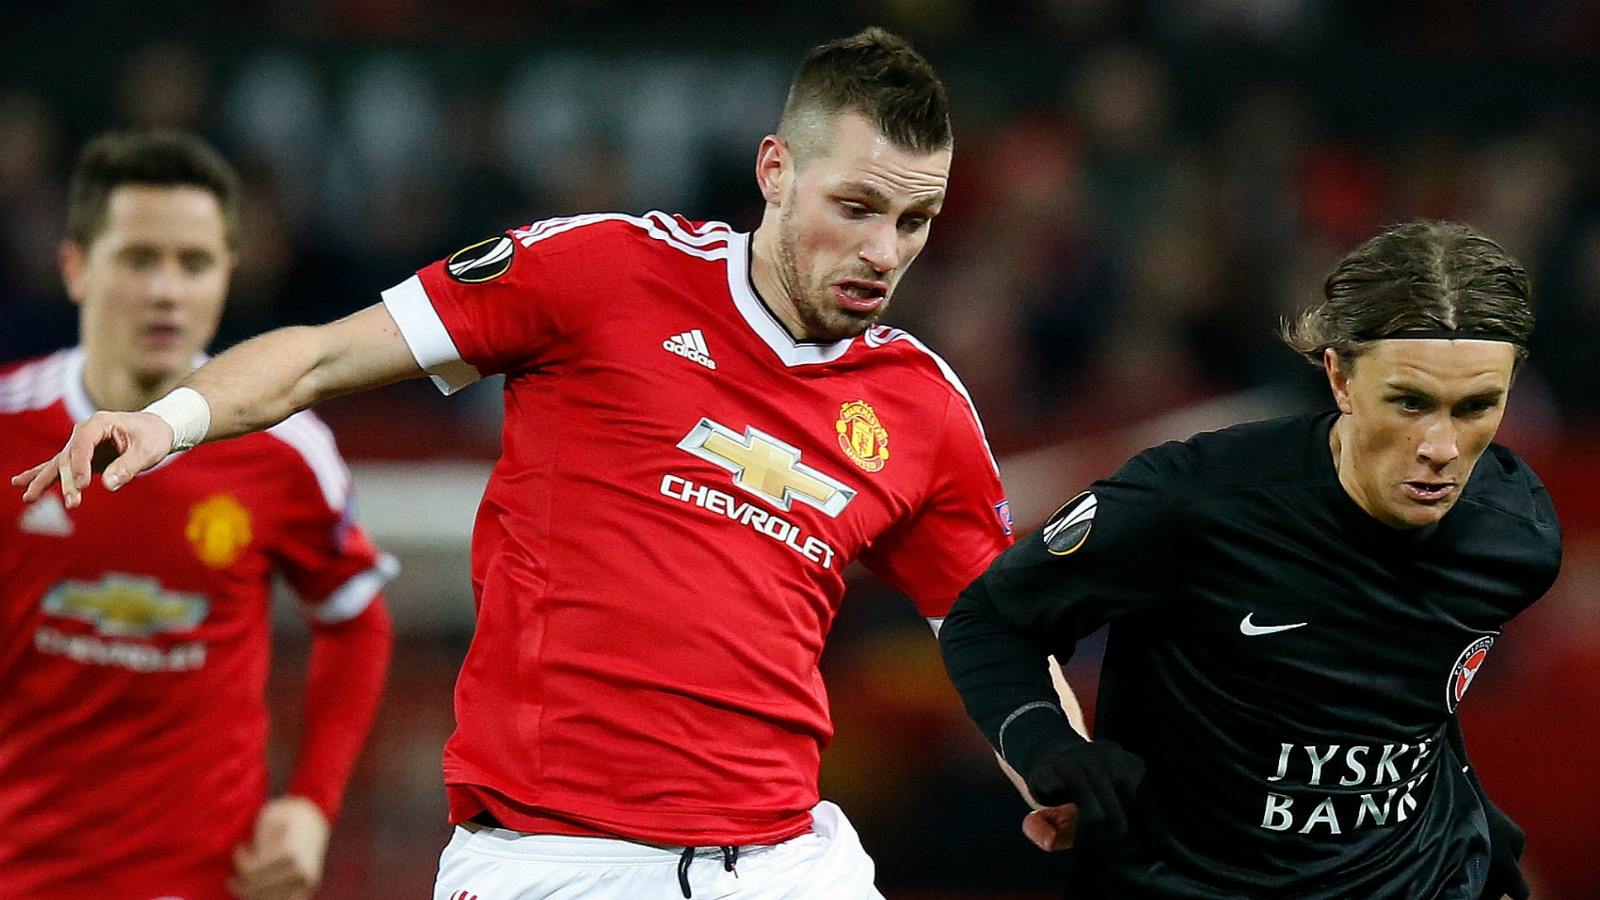 011017-Manchester-United-Morgan-Schneiderlin